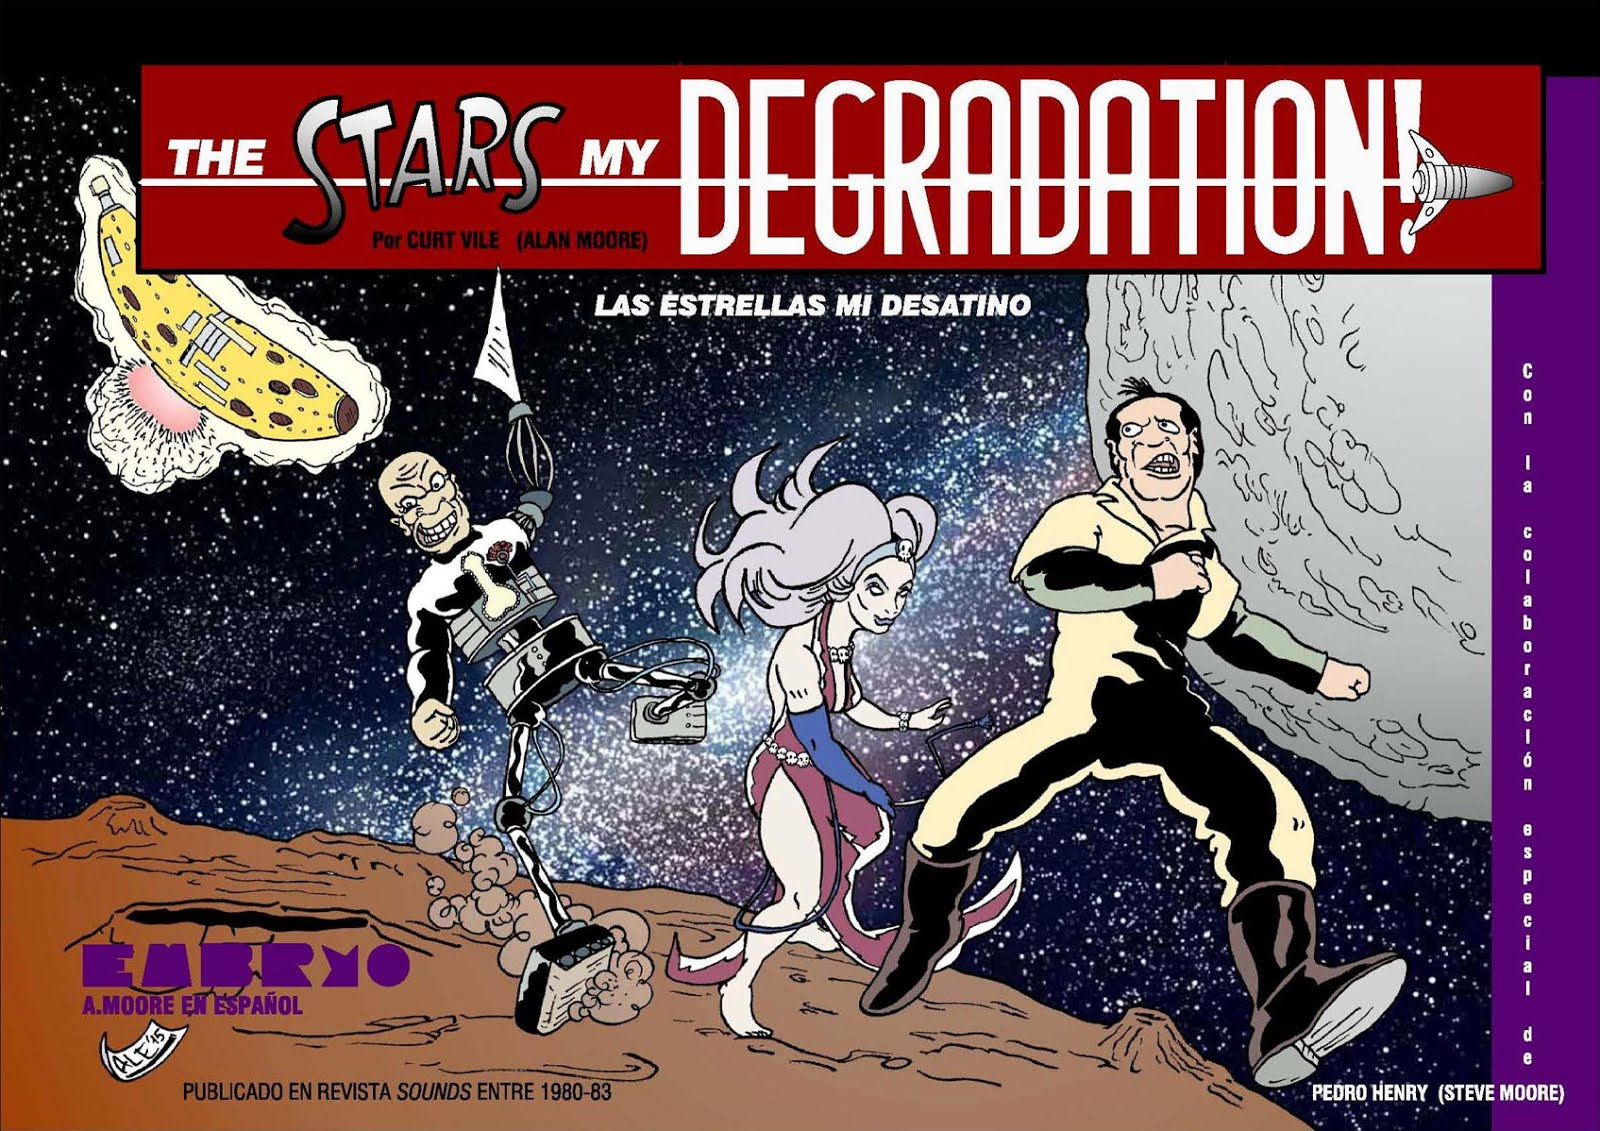 THE STARS MY DEGRADATION, de ALAN MOORE